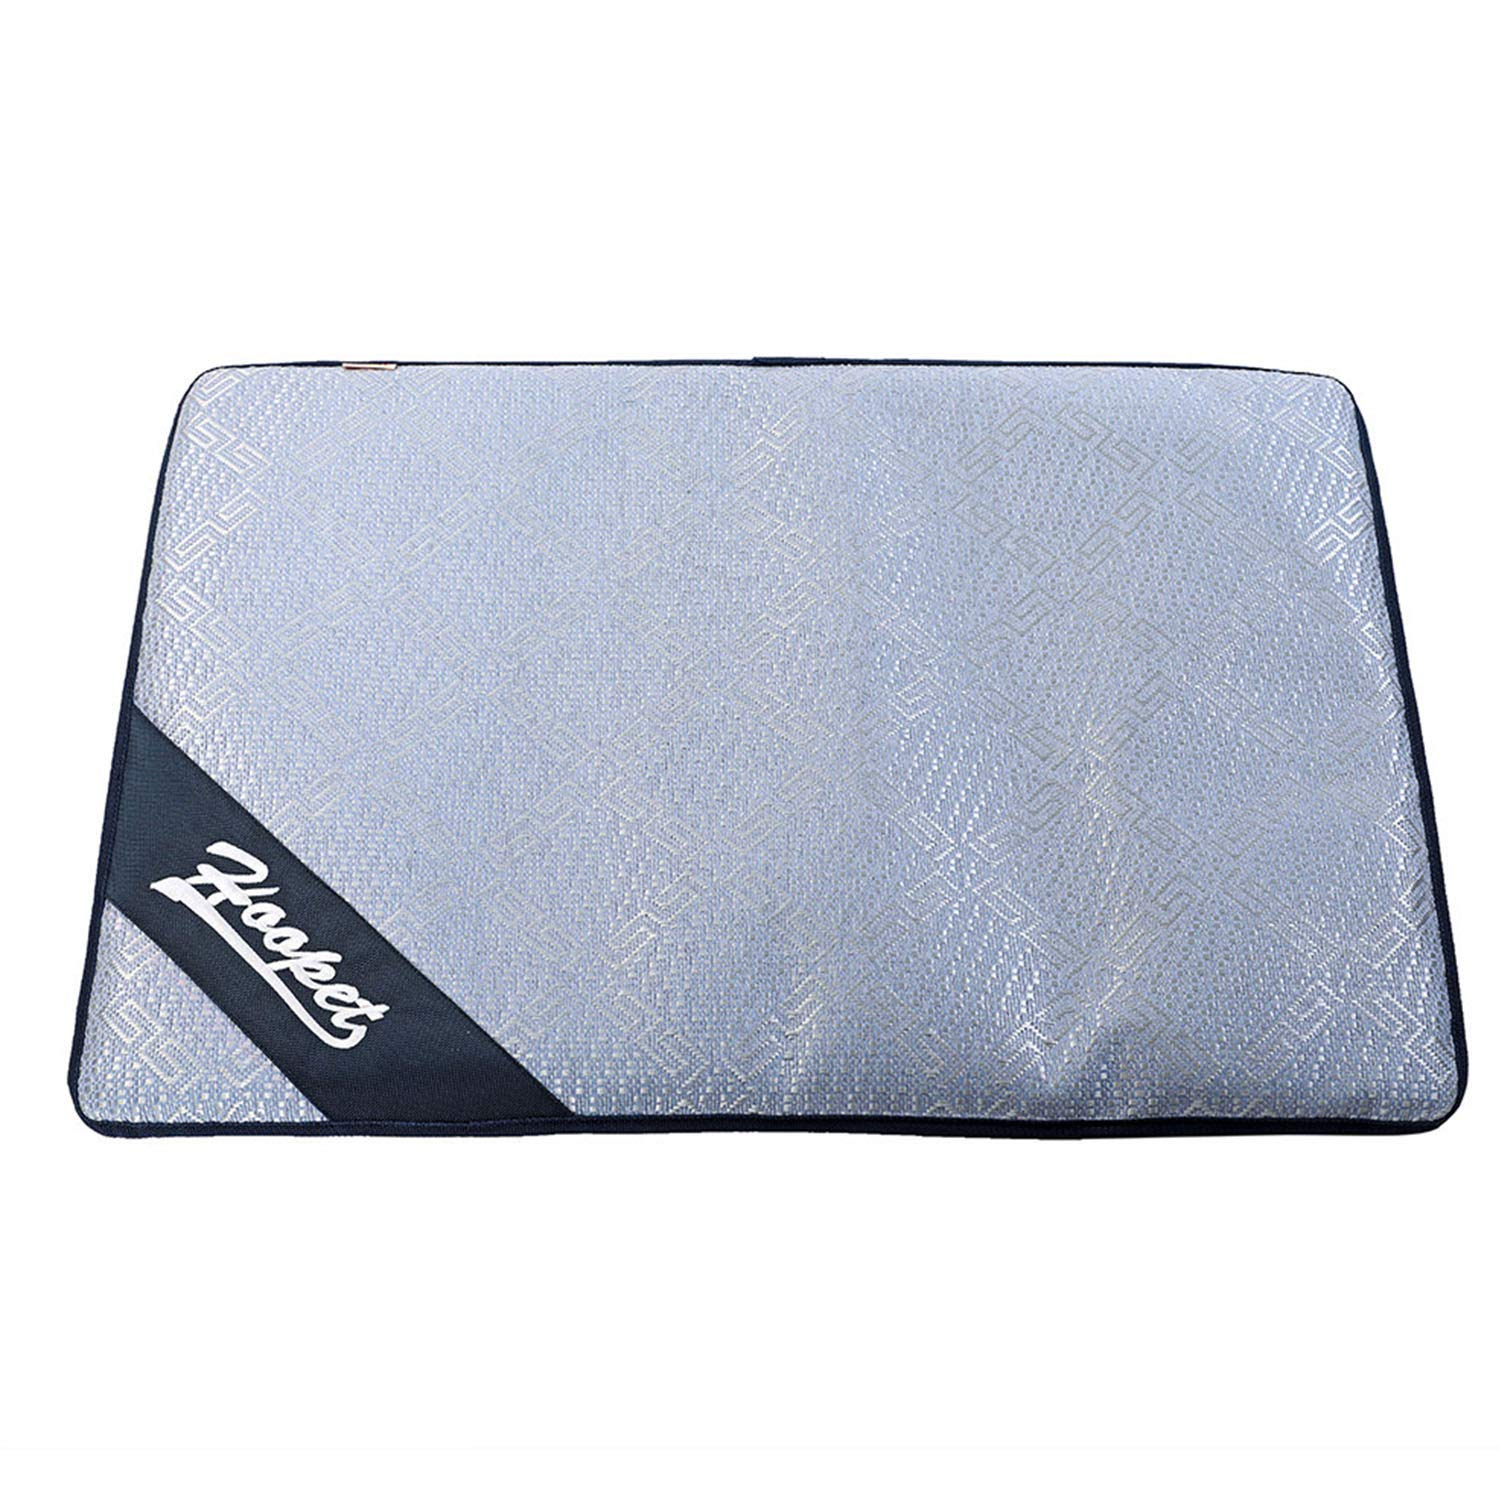 Light bluee M Light bluee M mat for Small and Medium Dogs and Cats